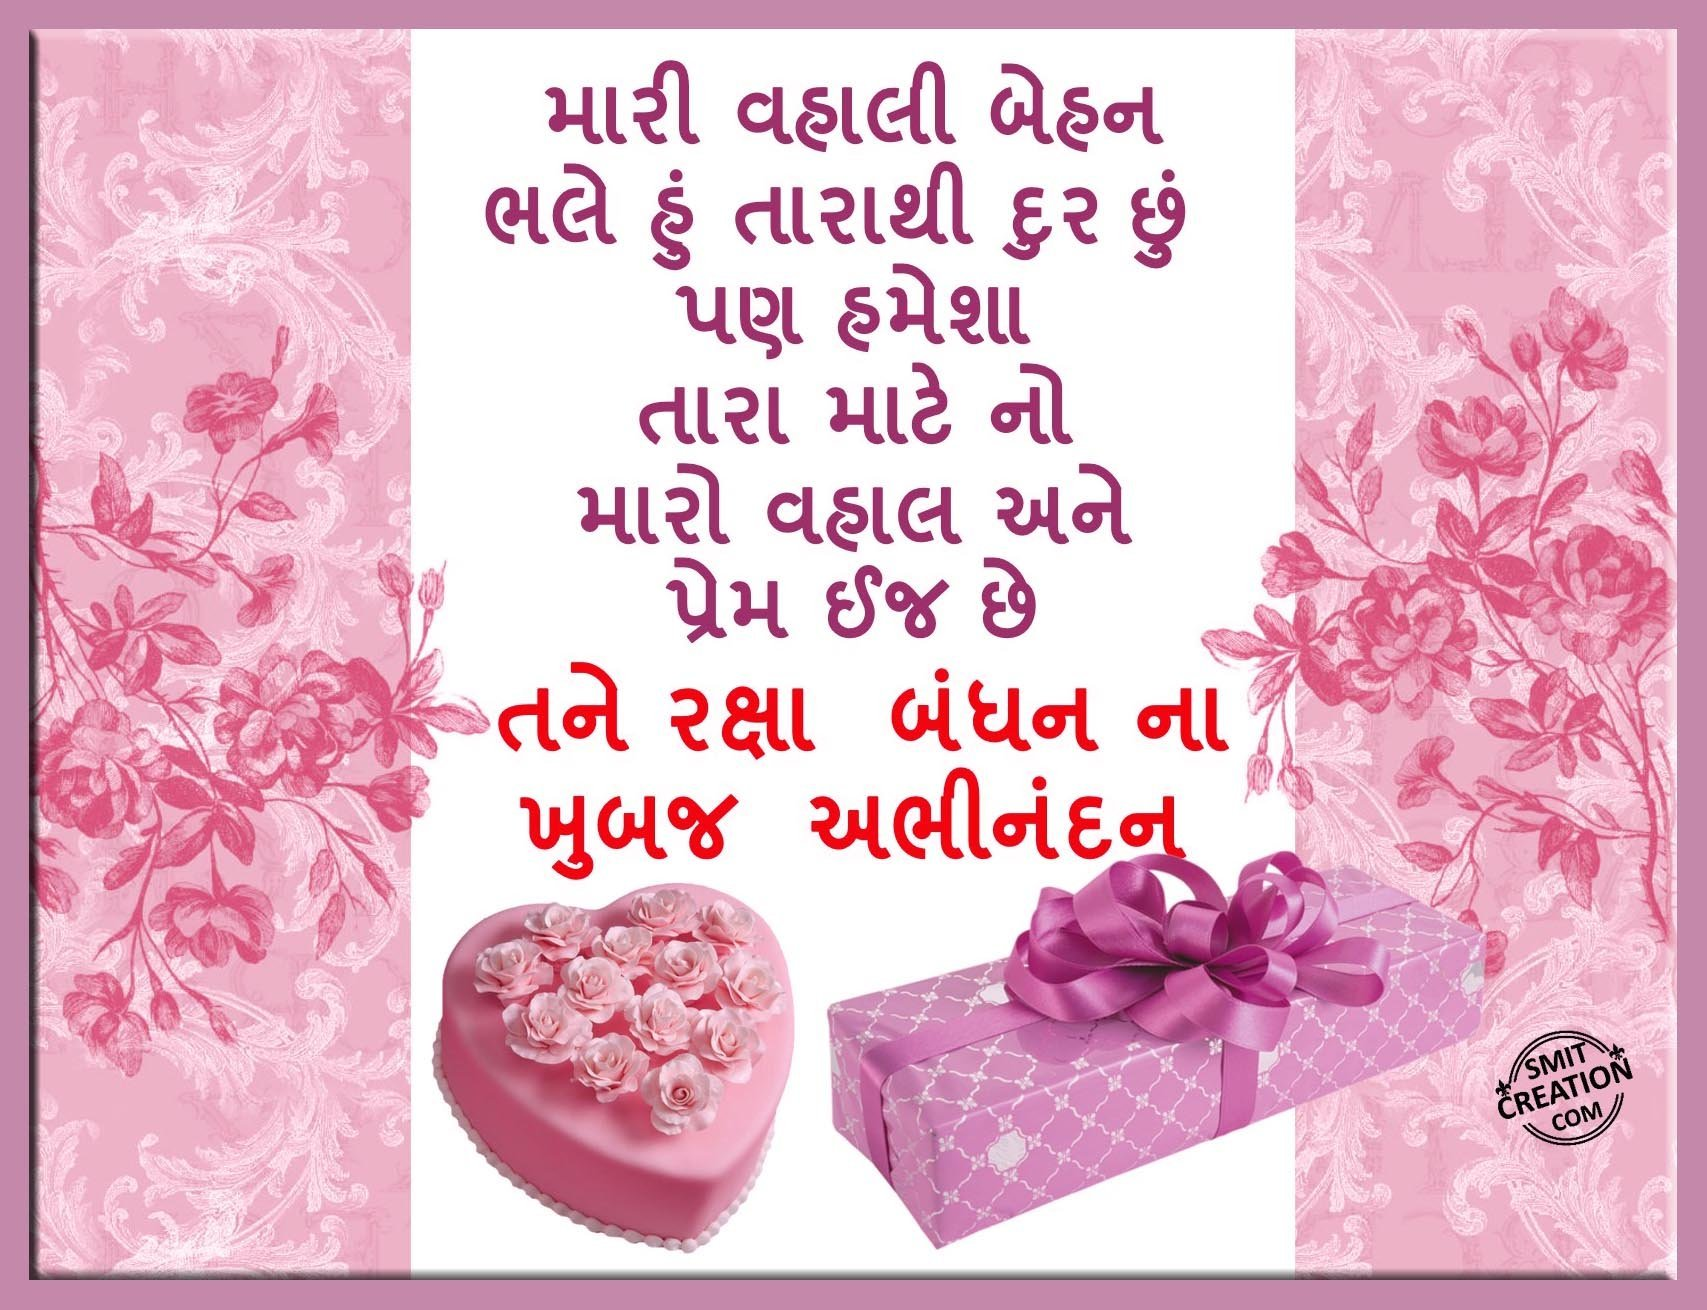 belated happy marriage anniversary